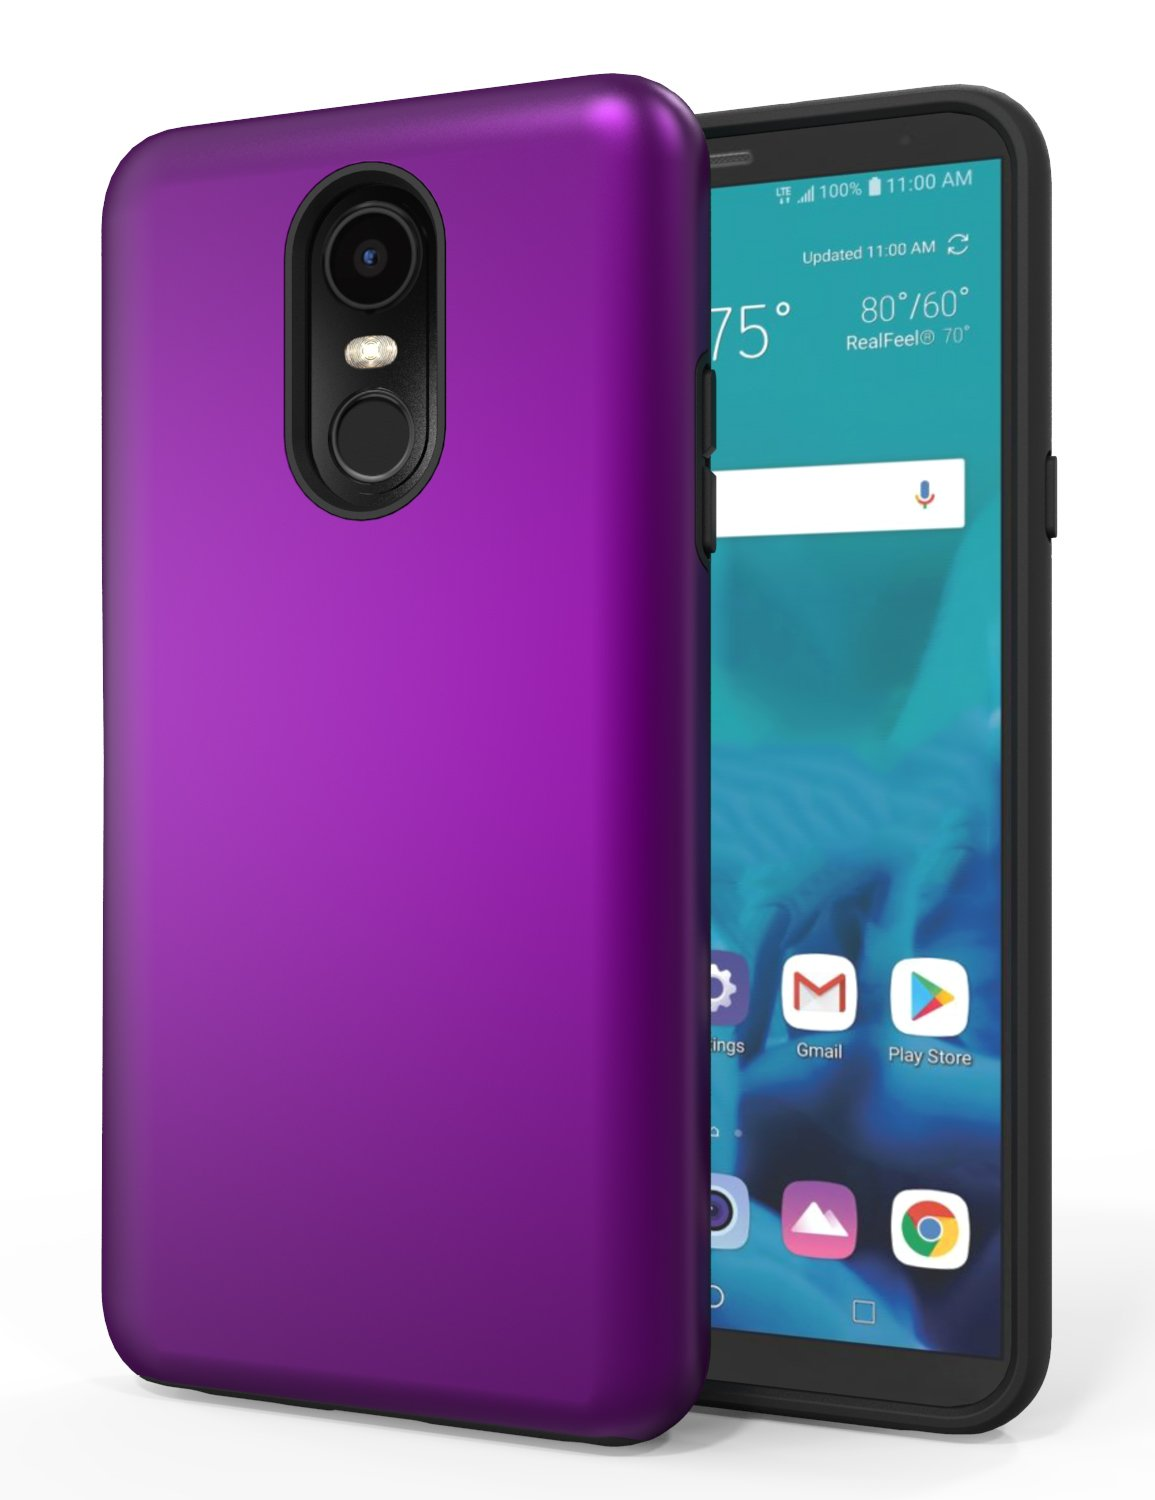 LG Stylo 4 Case,LG Stylo 4 Phone Case,LG Stylo 4 Plus Case,SENON Slim-fit Shockproof Anti-Scratch Anti-Fingerprint Protective Case Cover for LG Stylo 4,Purple